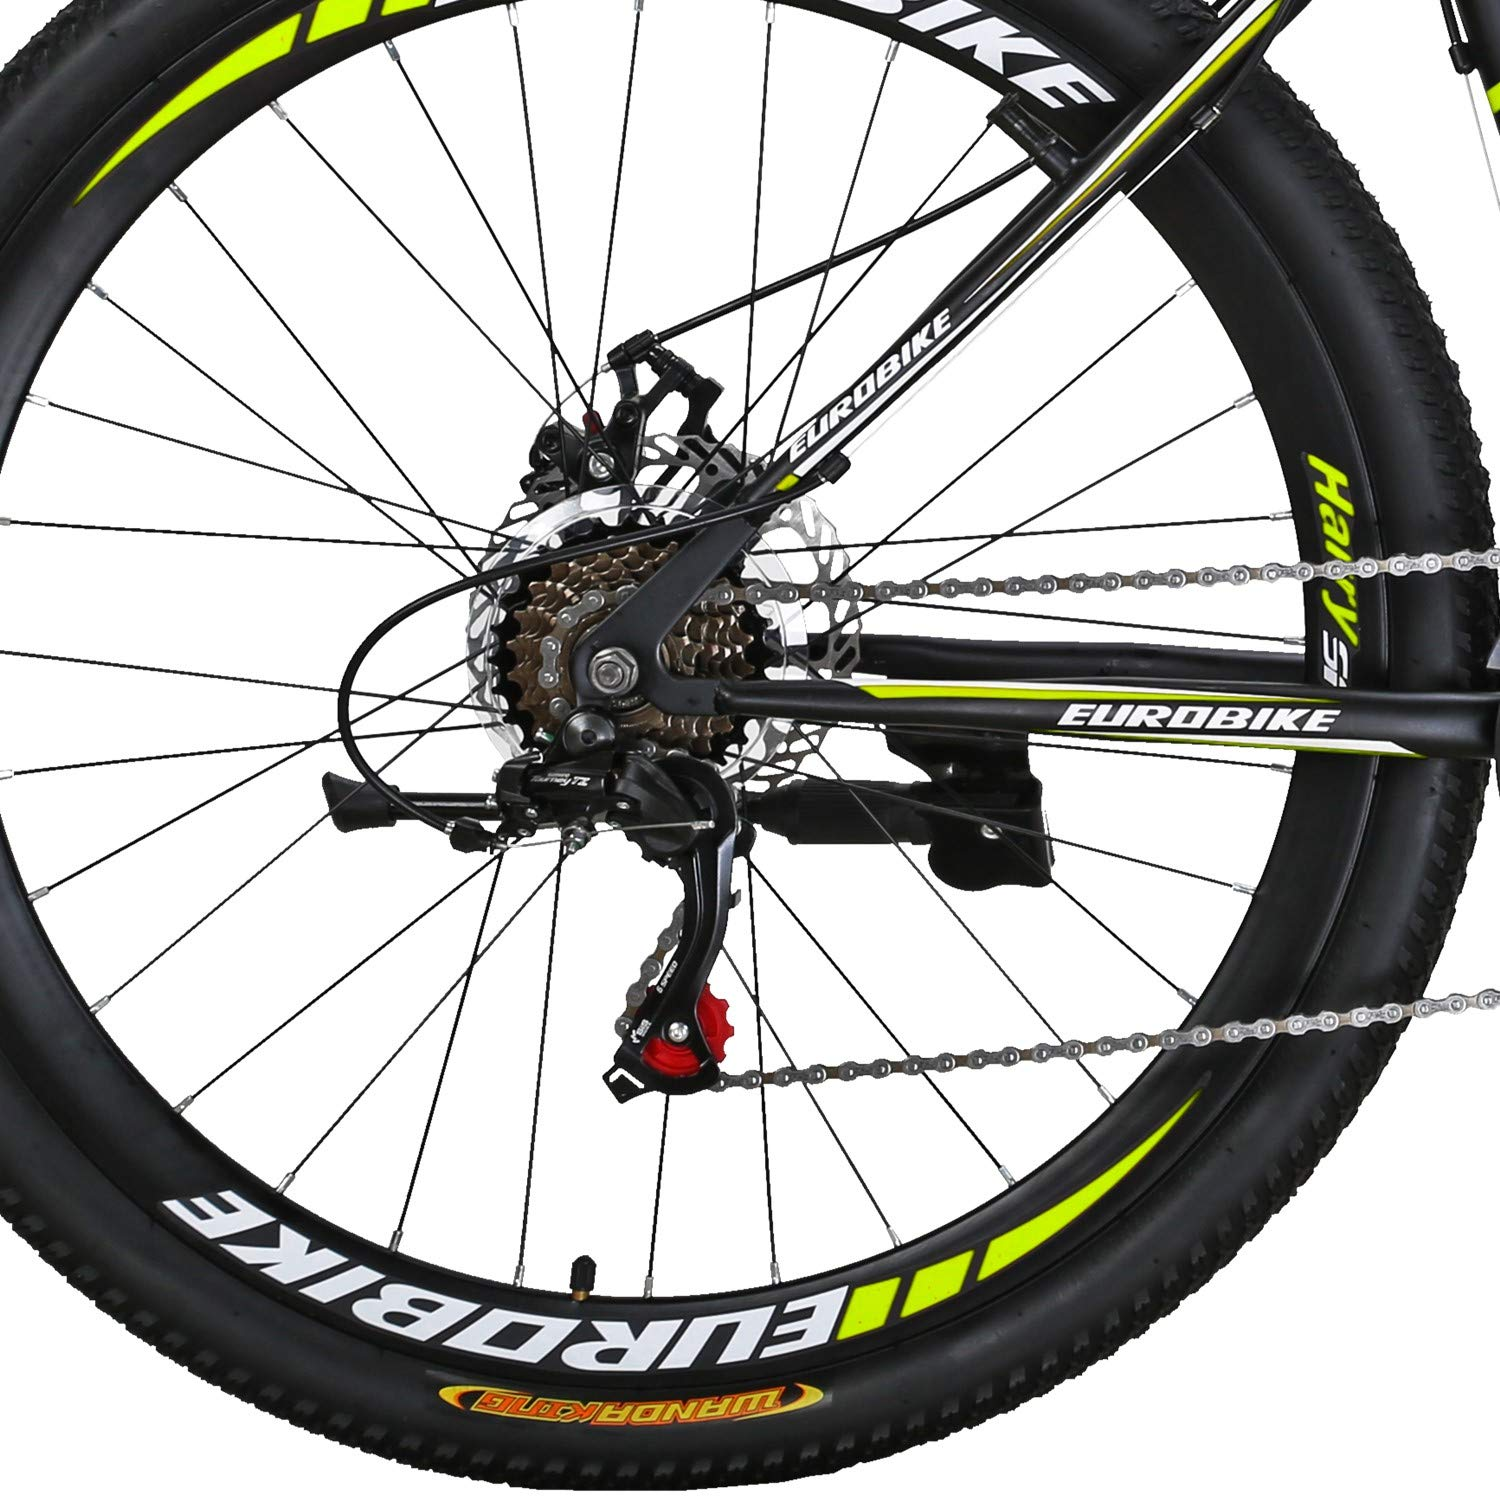 Eurobike BICYCE X1 27.5inch Mountain Bike 21 Speed Shift Left 3 Right 7 Frame Mountain Bicycle